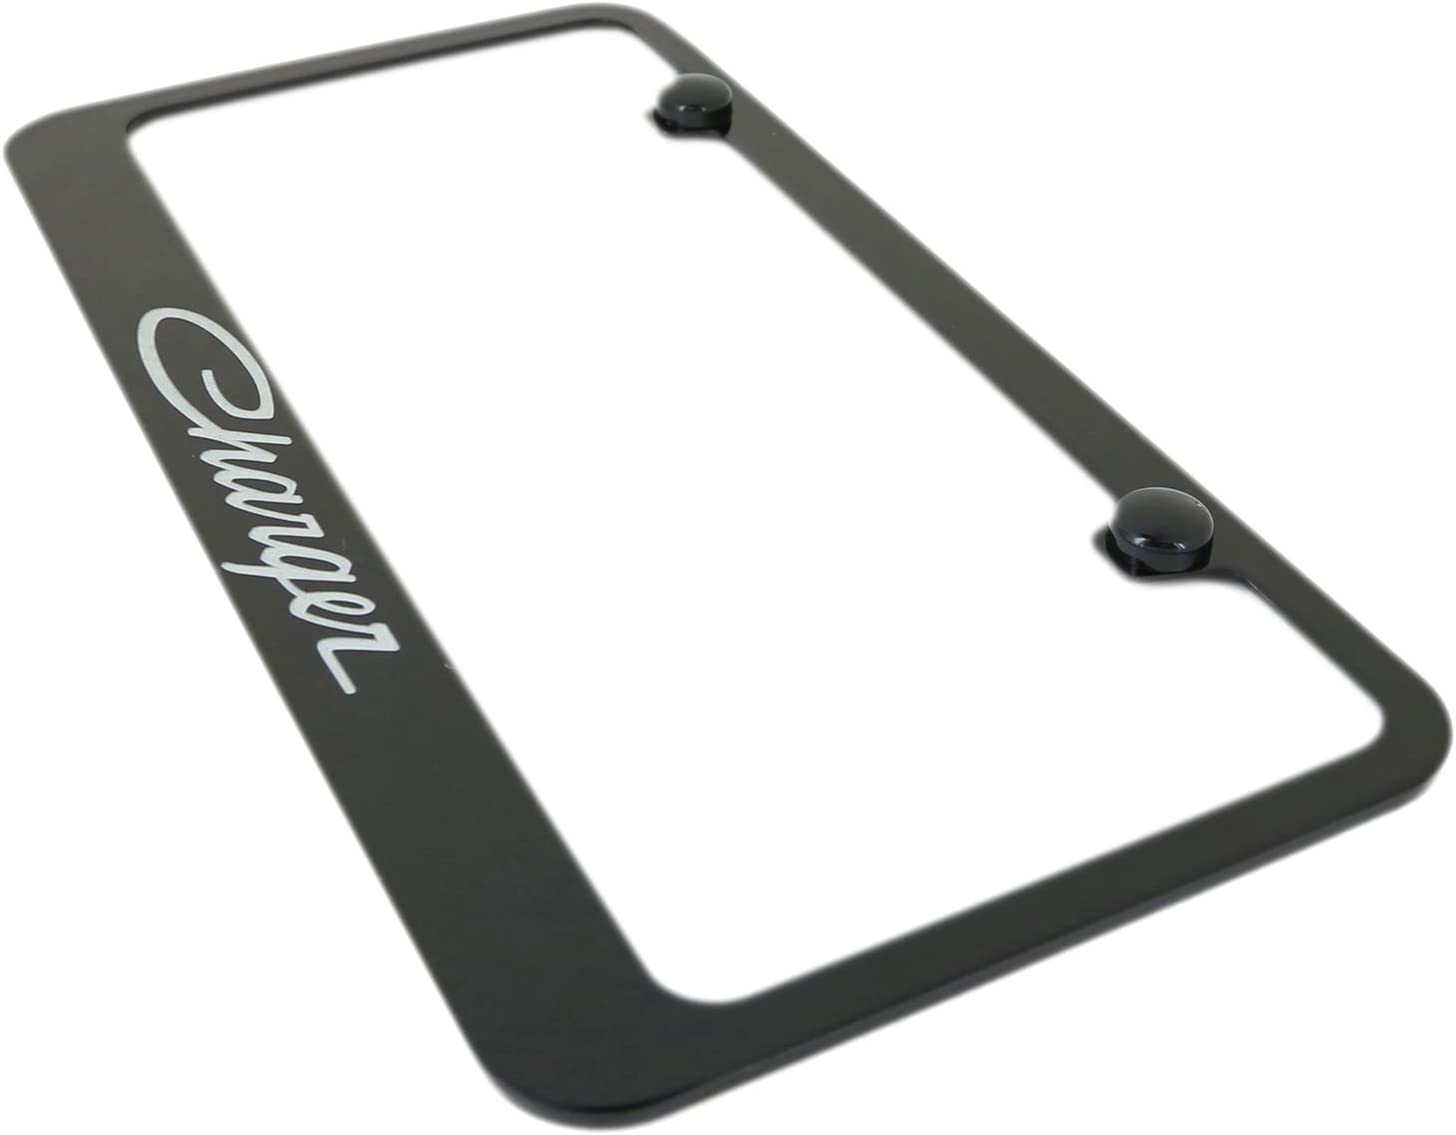 Inc.Black License Plate Frame for Dodge Charger Elite Automotive Products